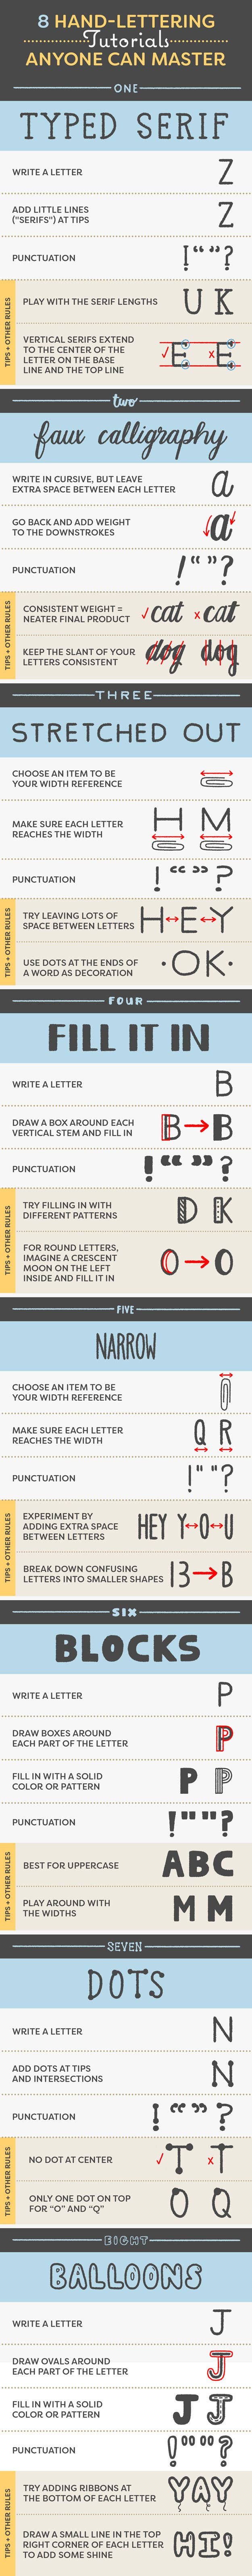 Or Read Through These Tips For Beautiful Calligraphy